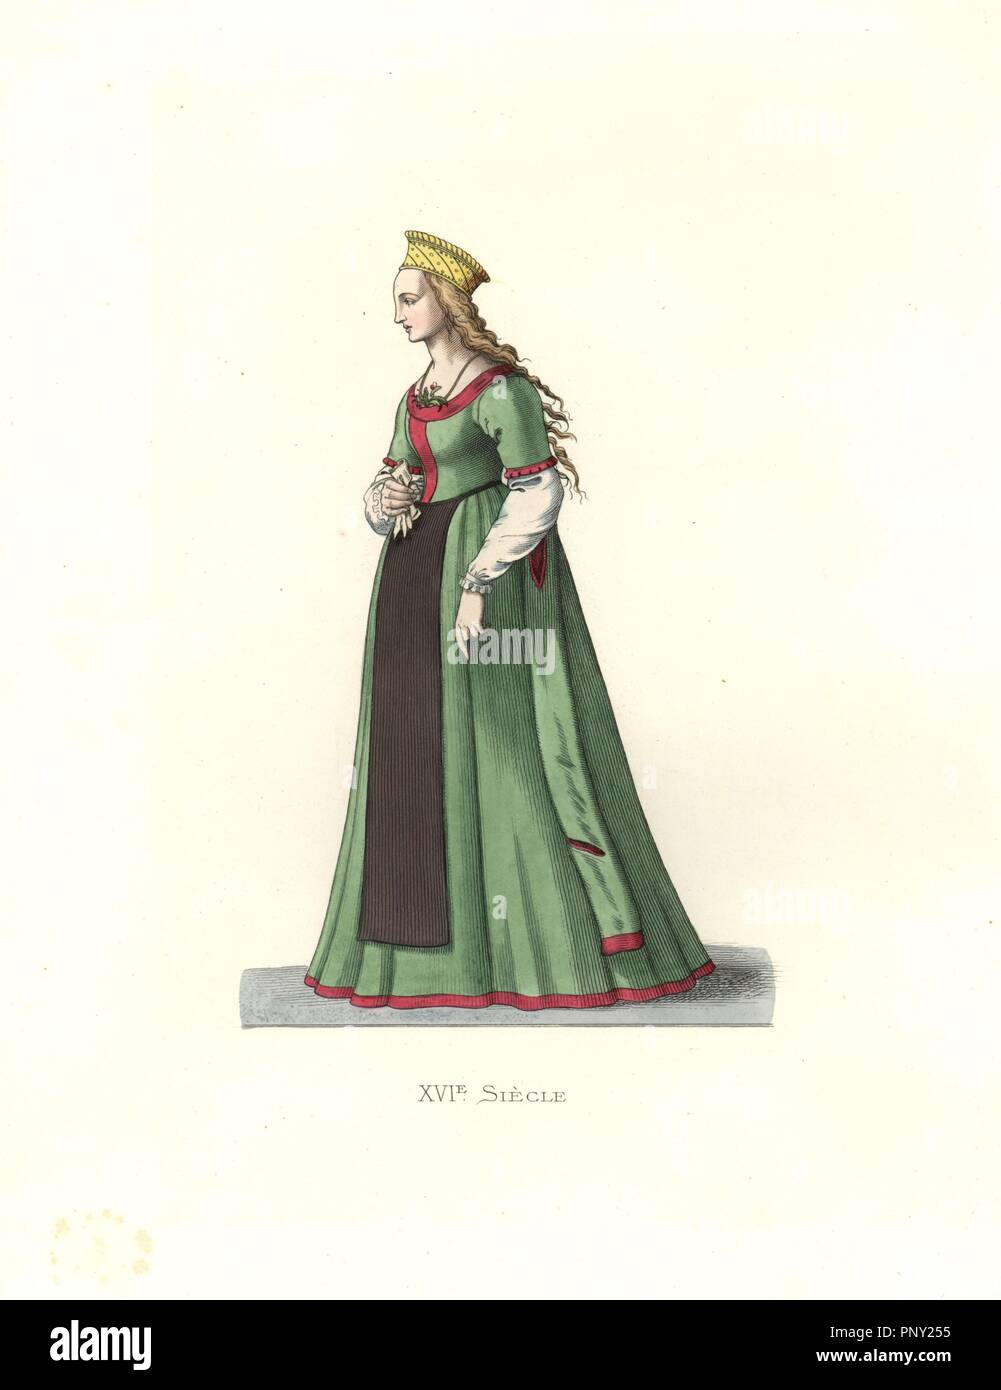 """Young woman from Danzig, 16th century, wearing long green silk dress, black apron, and a gold crown. . Handcolored illustration by E. Lechevallier-Chevignard, lithographed by A. Didier, L. Flameng, F. Laguillermie, from Georges Duplessis's """"Costumes historiques des XVIe, XVIIe et XVIIIe siecles"""" (Historical costumes of the 16th, 17th and 18th centuries), Paris 1867. The book was a continuation of the series on the costumes of the 12th to 15th centuries published by Camille Bonnard and Paul Mercuri from 1830. Georges Duplessis (1834-1899) was curator of the Prints department at the Bibliotheque Stock Photo"""